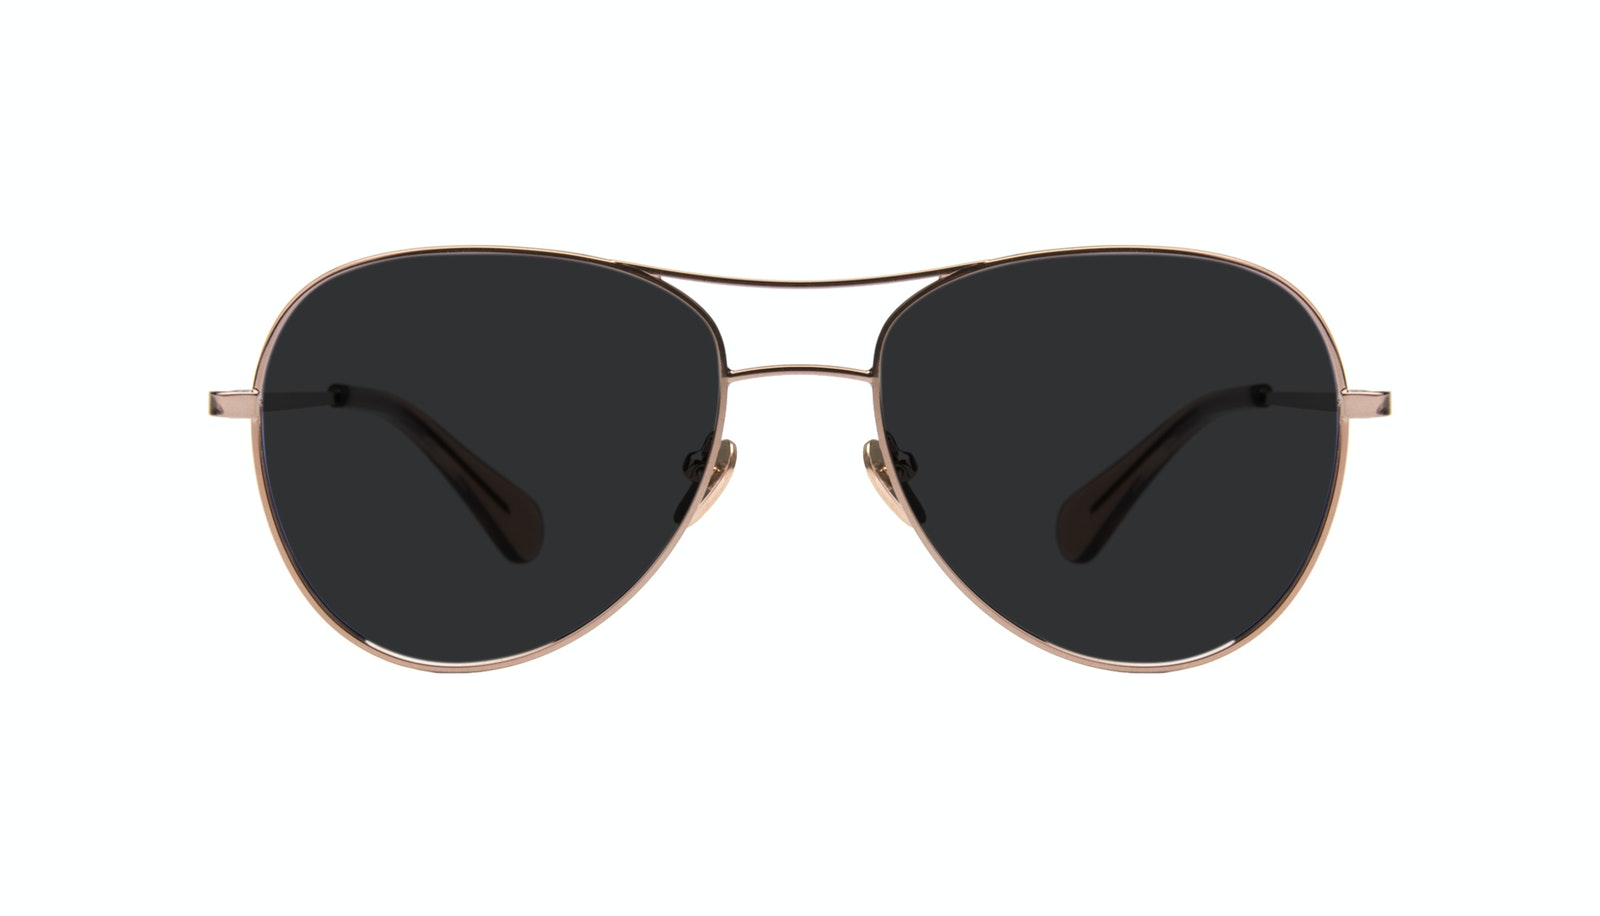 Affordable Fashion Glasses Aviator Sunglasses Women Want Rose Gold